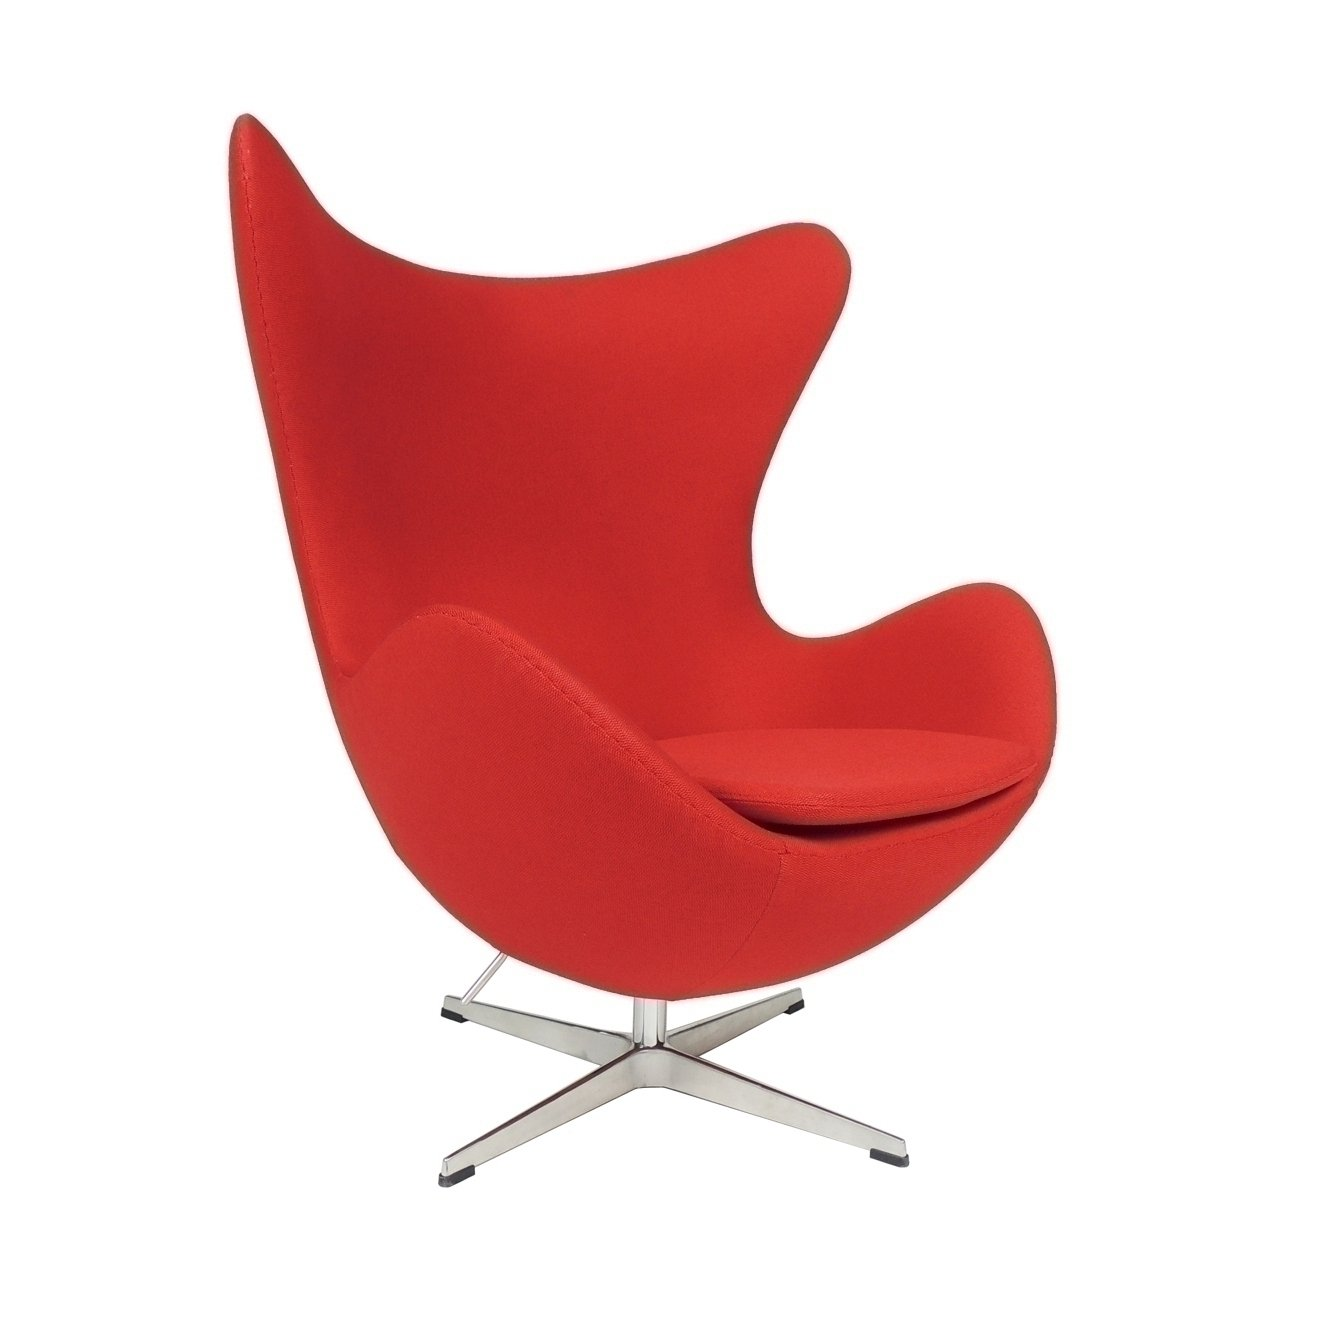 Arne Jacobsen Egg Chair Arne Jacobsen Njmodern Furniture